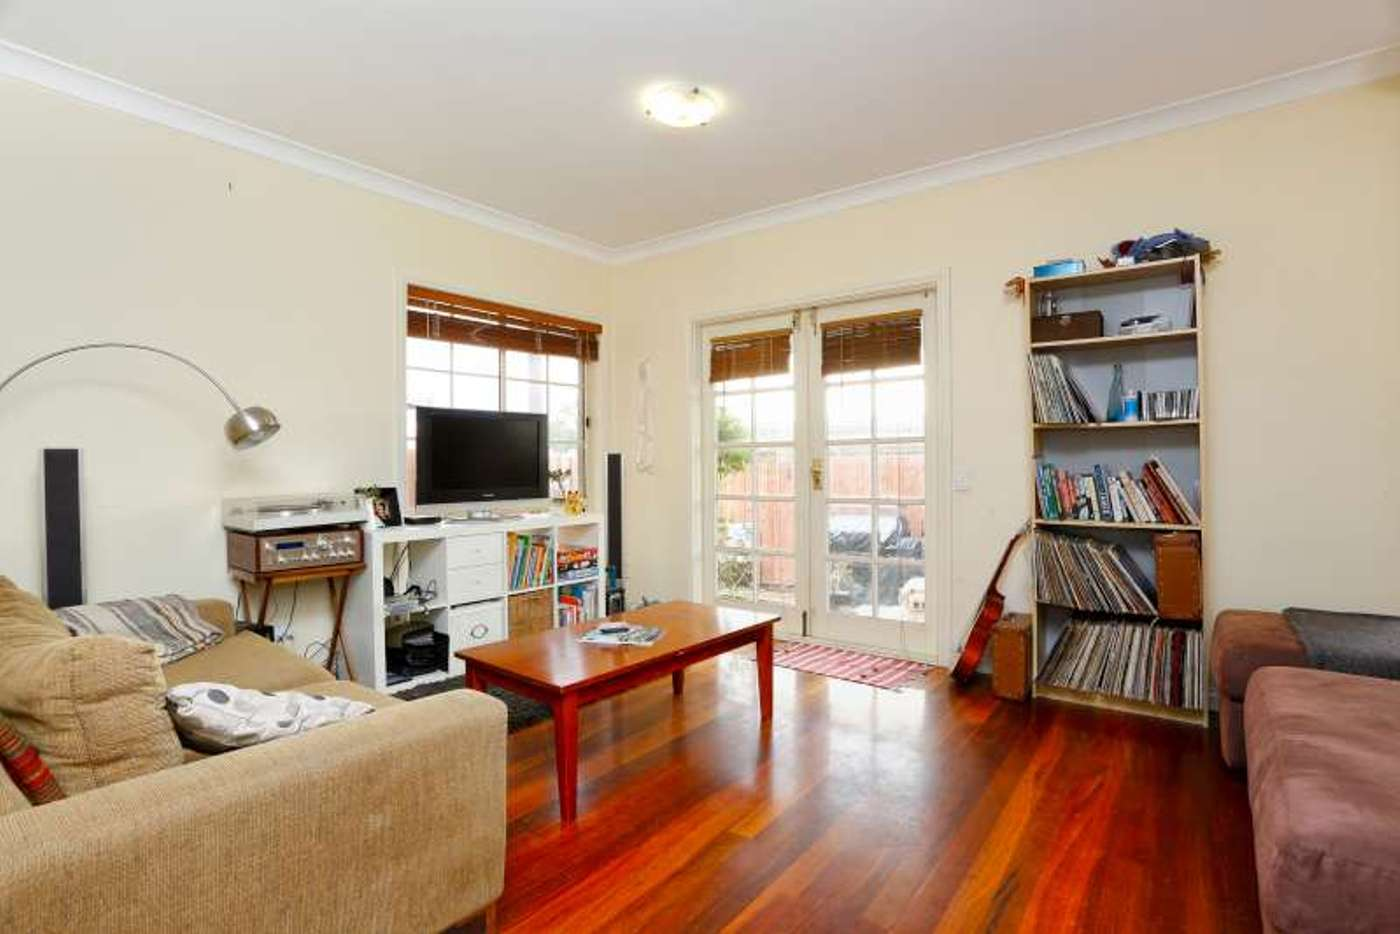 Main view of Homely townhouse listing, 15 Rayment St, Thornbury VIC 3071